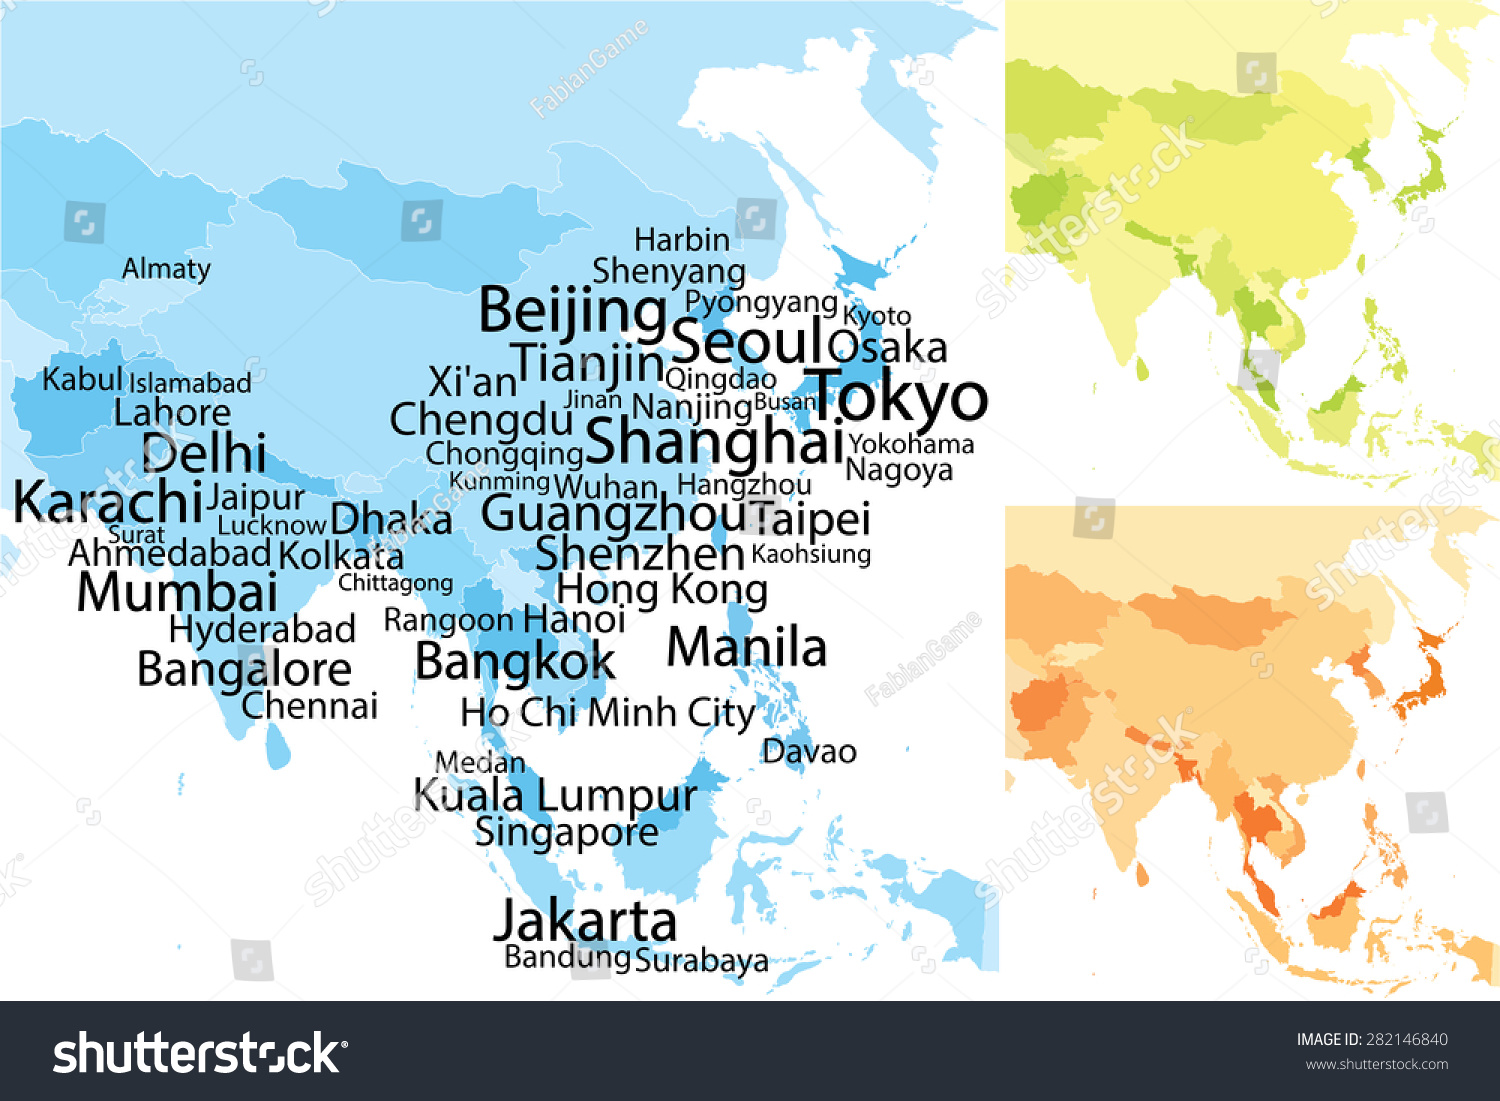 Map Of Asia Jakarta.Map Asia Largest Cities Carefully Scaled Stock Vector Royalty Free